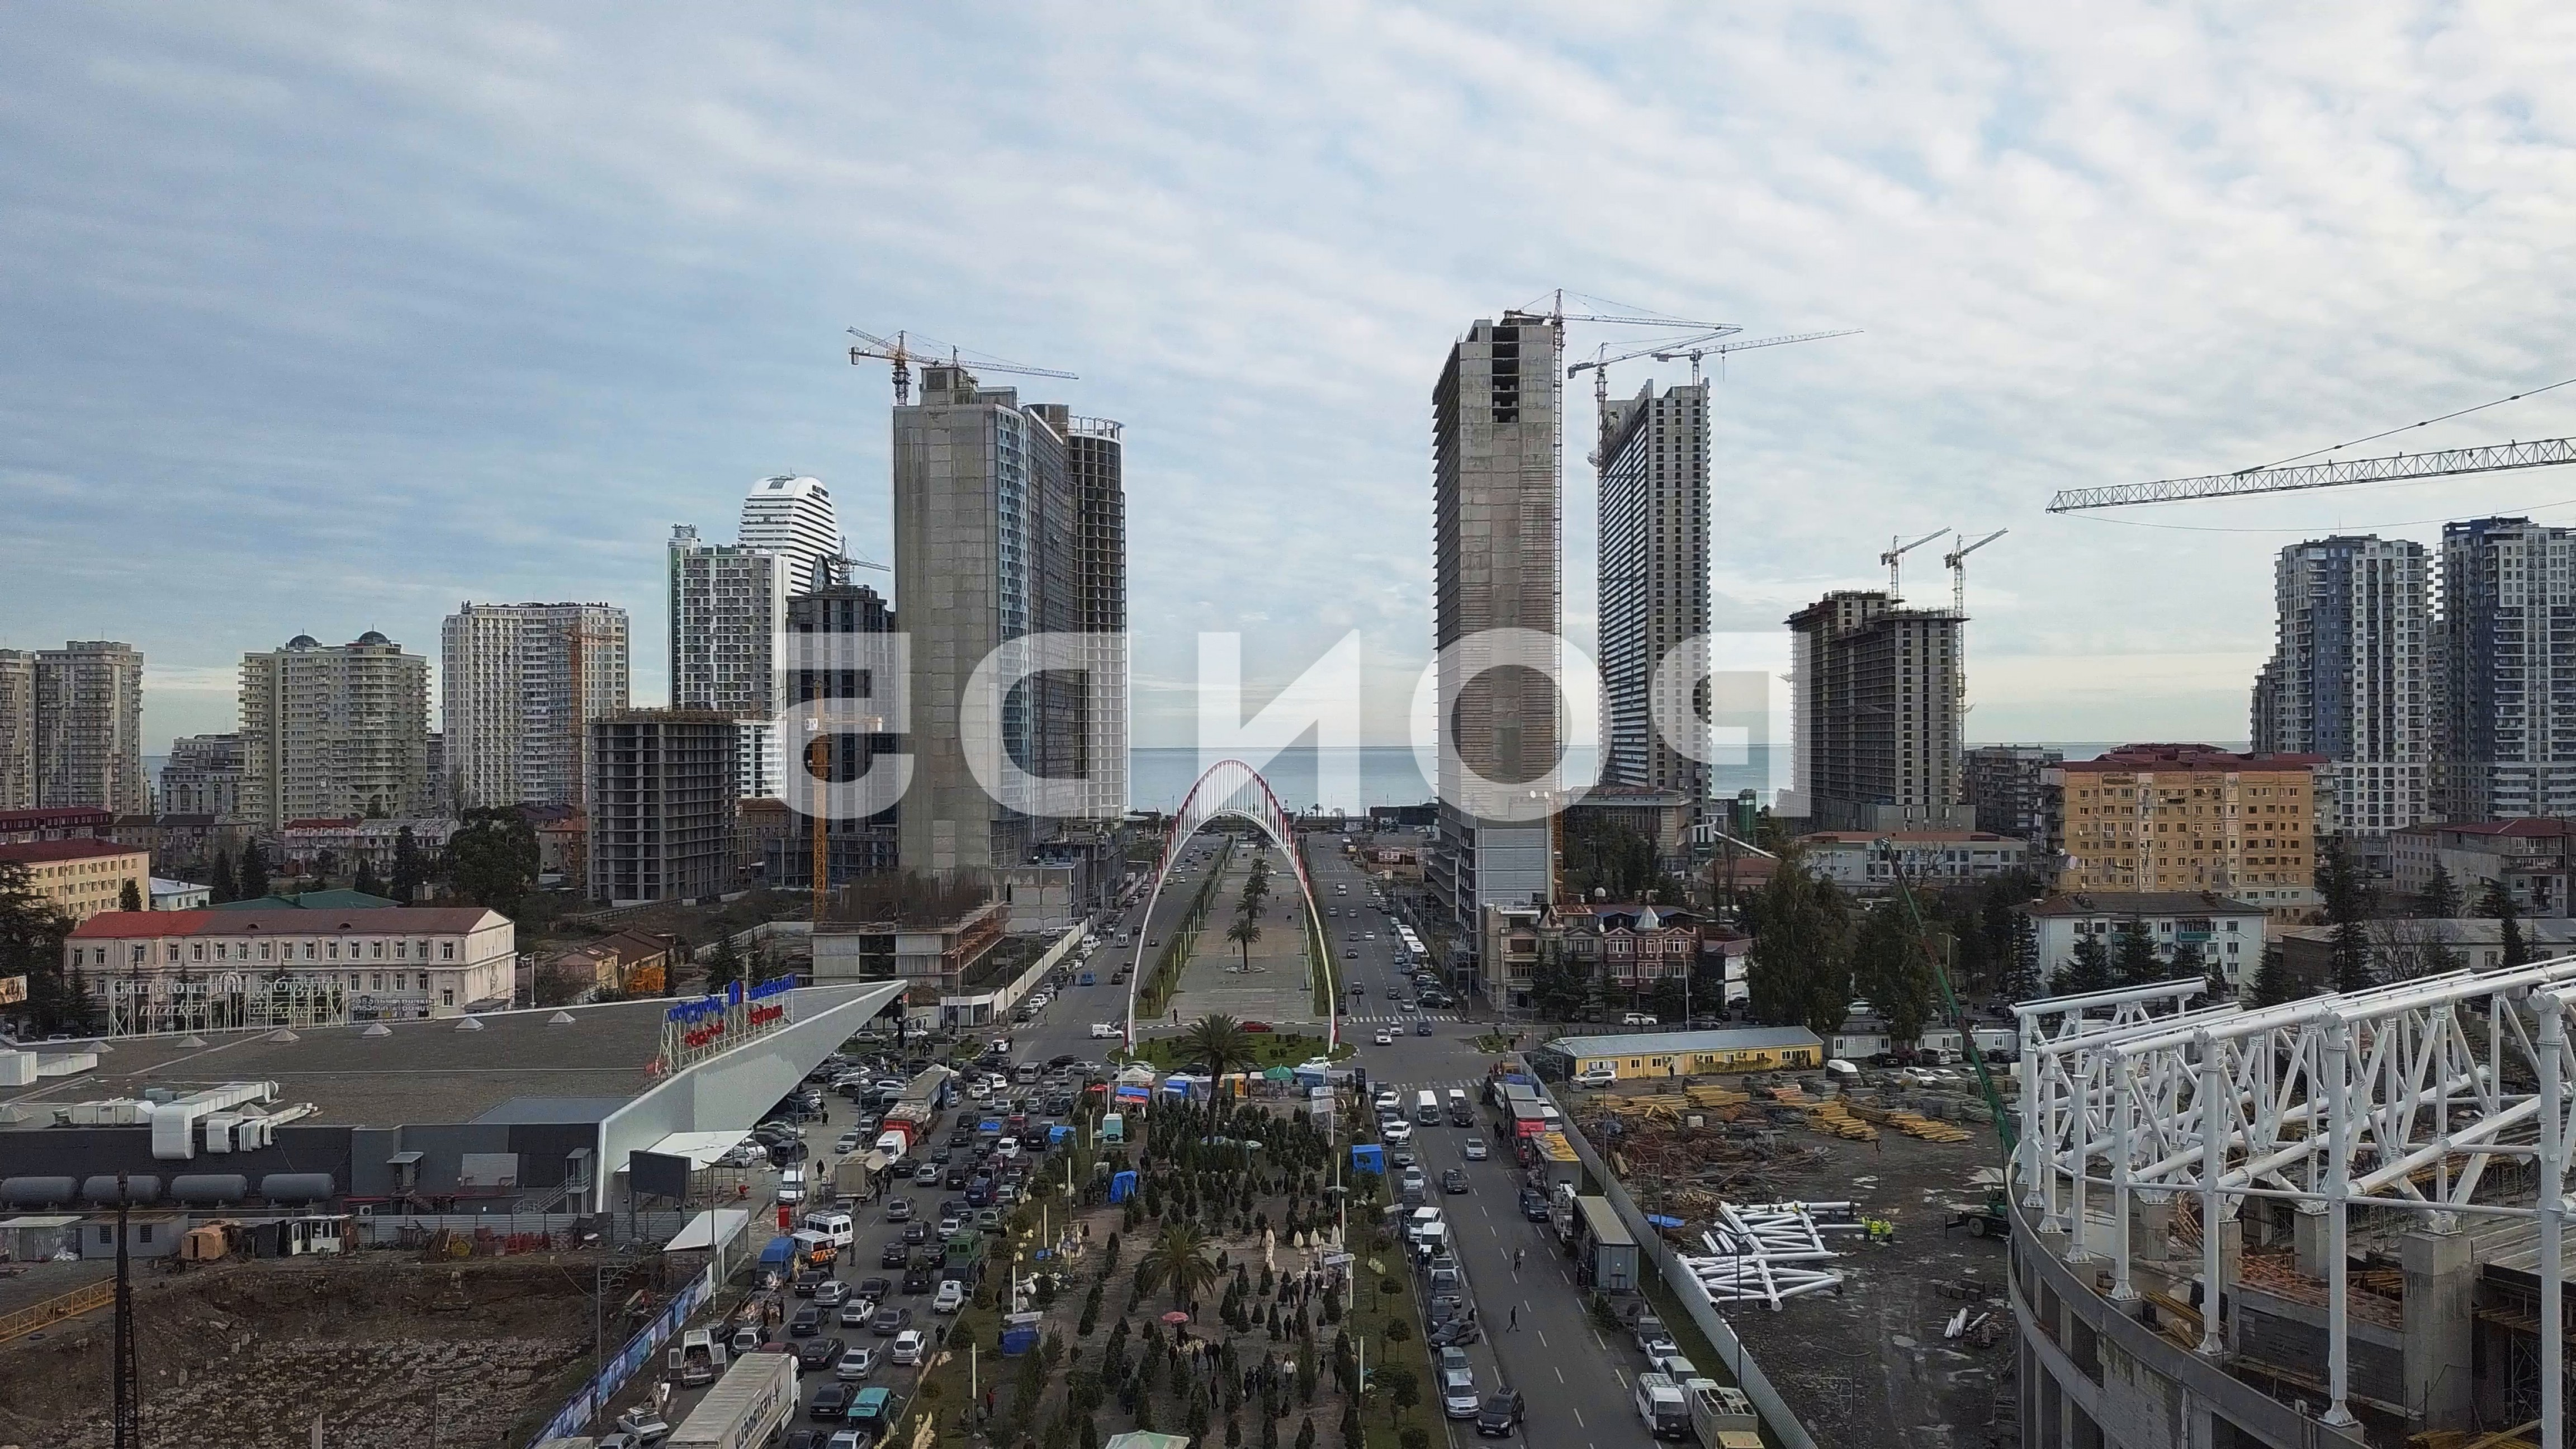 GA Tech Stinger Vector Art: Aerial View Unfinished Skyscrapers Batumigeorgialarge Crane